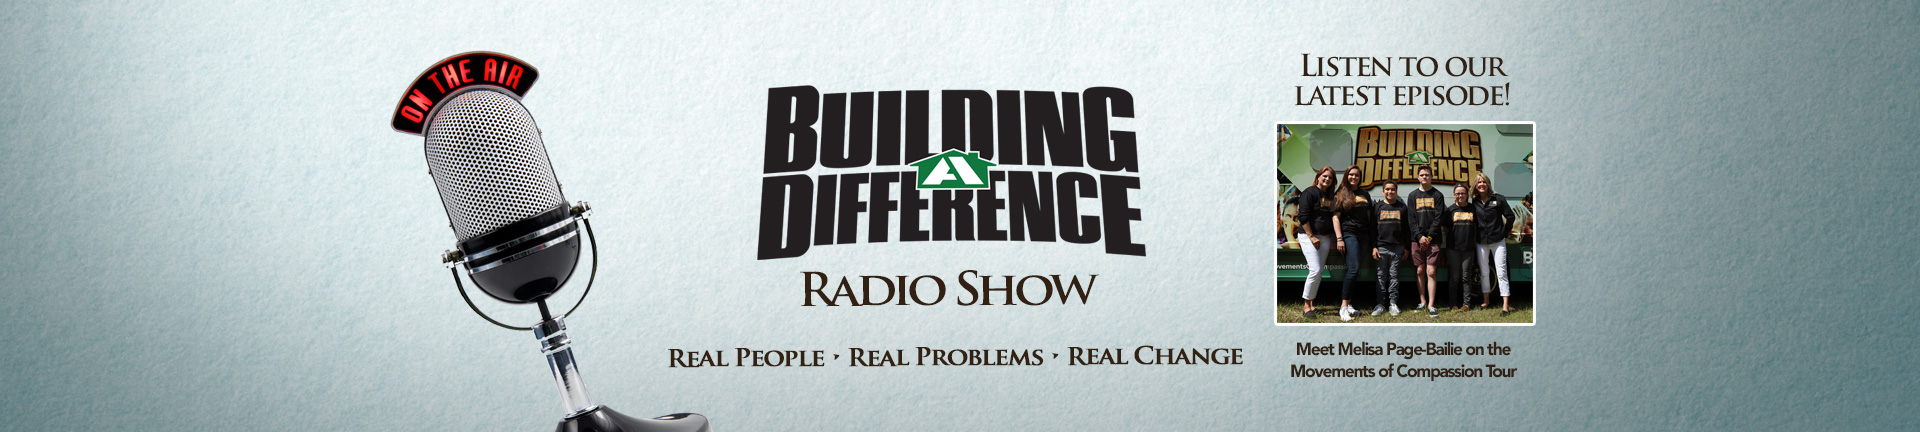 Building-a-Difference-Radio-Show-Header